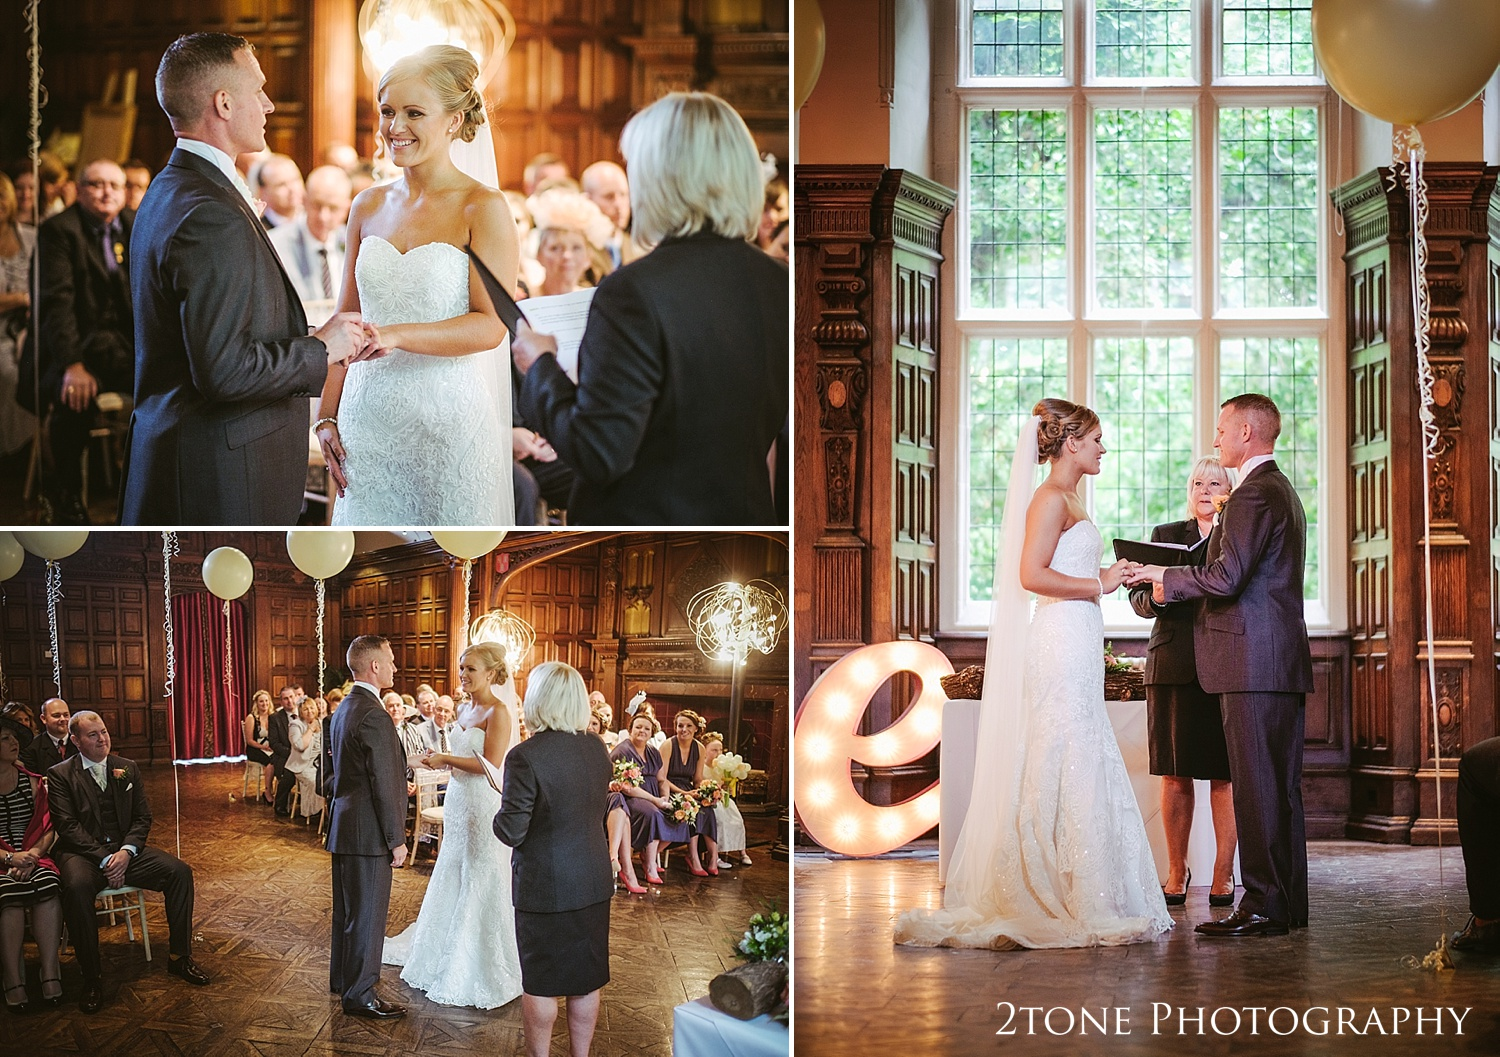 Wedding at Jesmond Dene House in Newcastle by 2tone Photography www.2tonephotography.co.uk